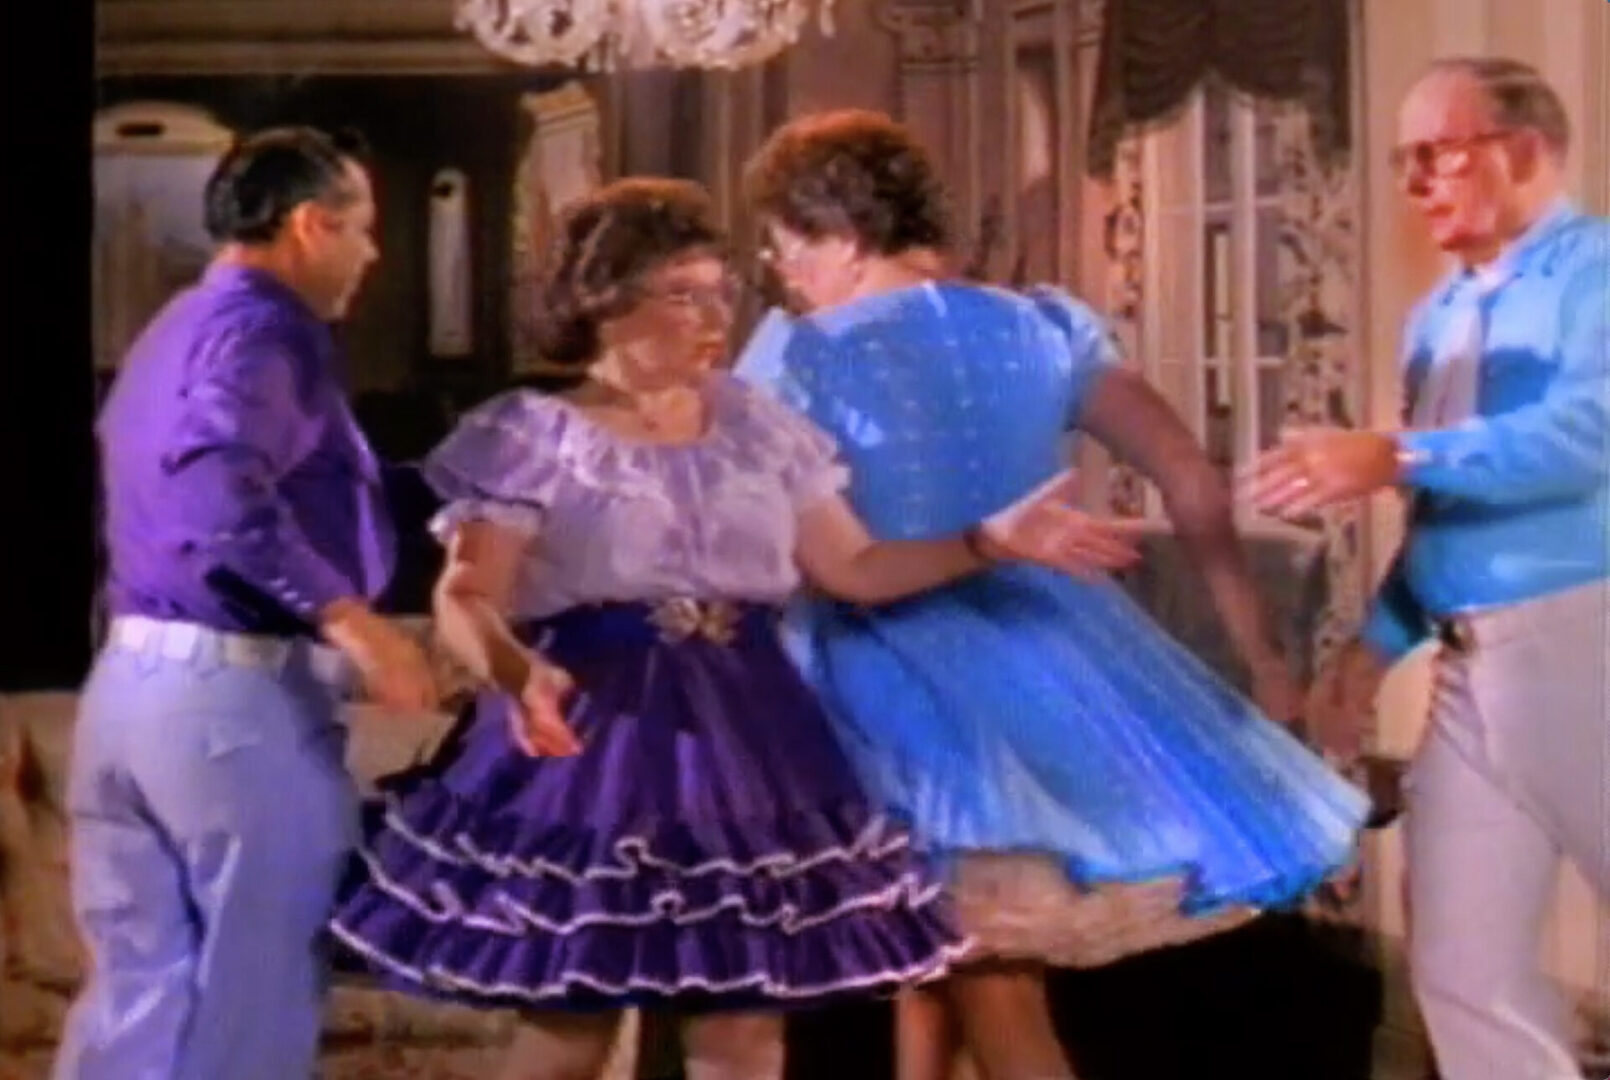 Toshi Kubota music video Dance If You Want It directed by Rocky Schenck.  Starring The Del Rubio Triplets, The Felix Twins, Square Dancers, Child Dancers.